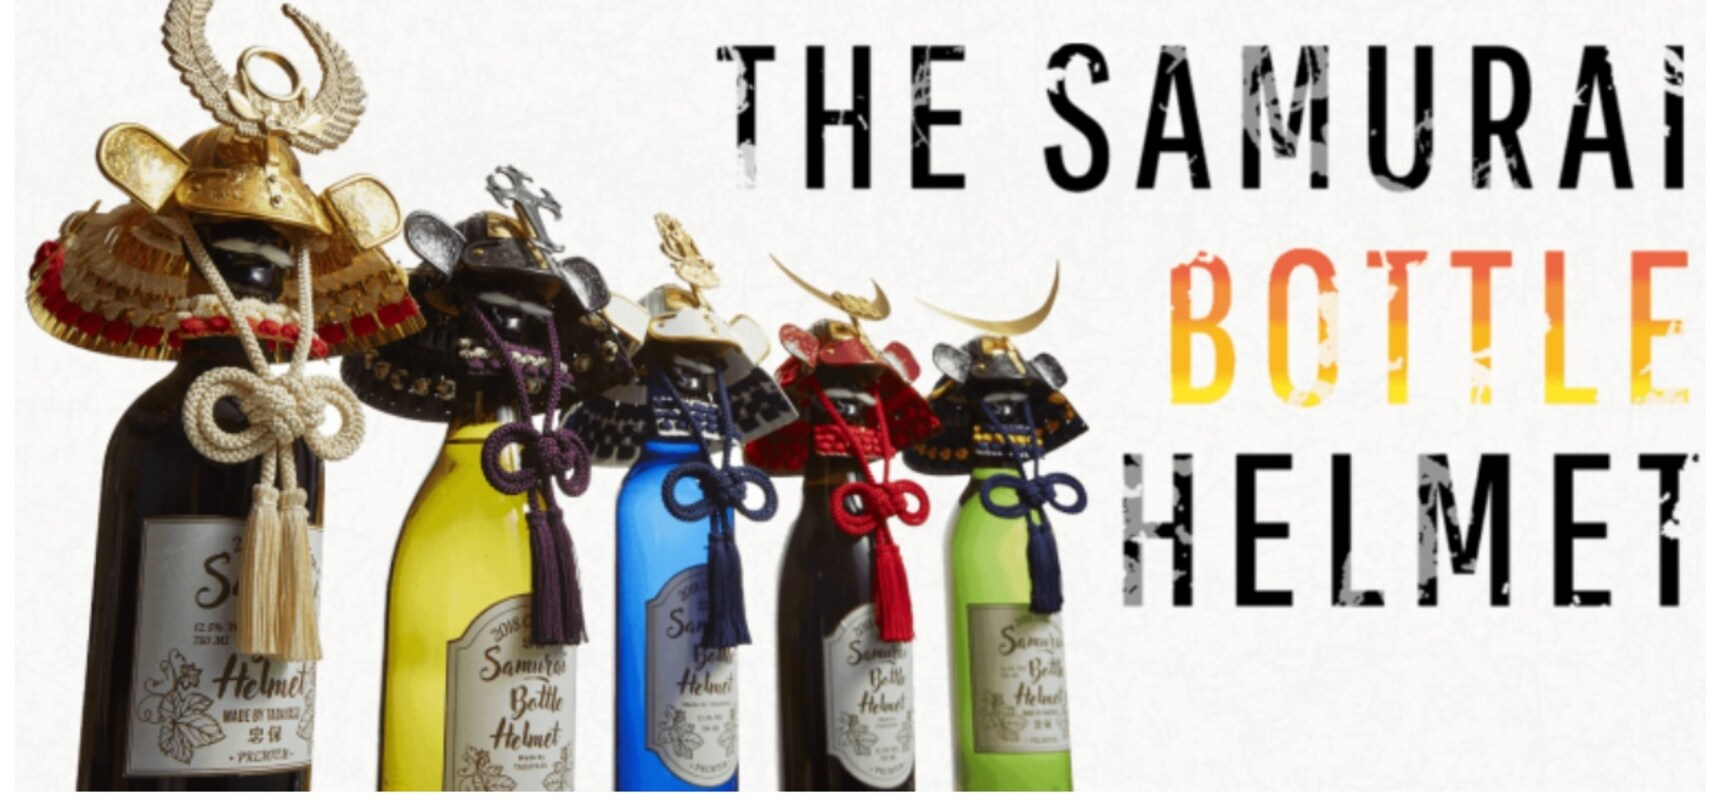 Give Your Favorite Booze Samurai-Style!